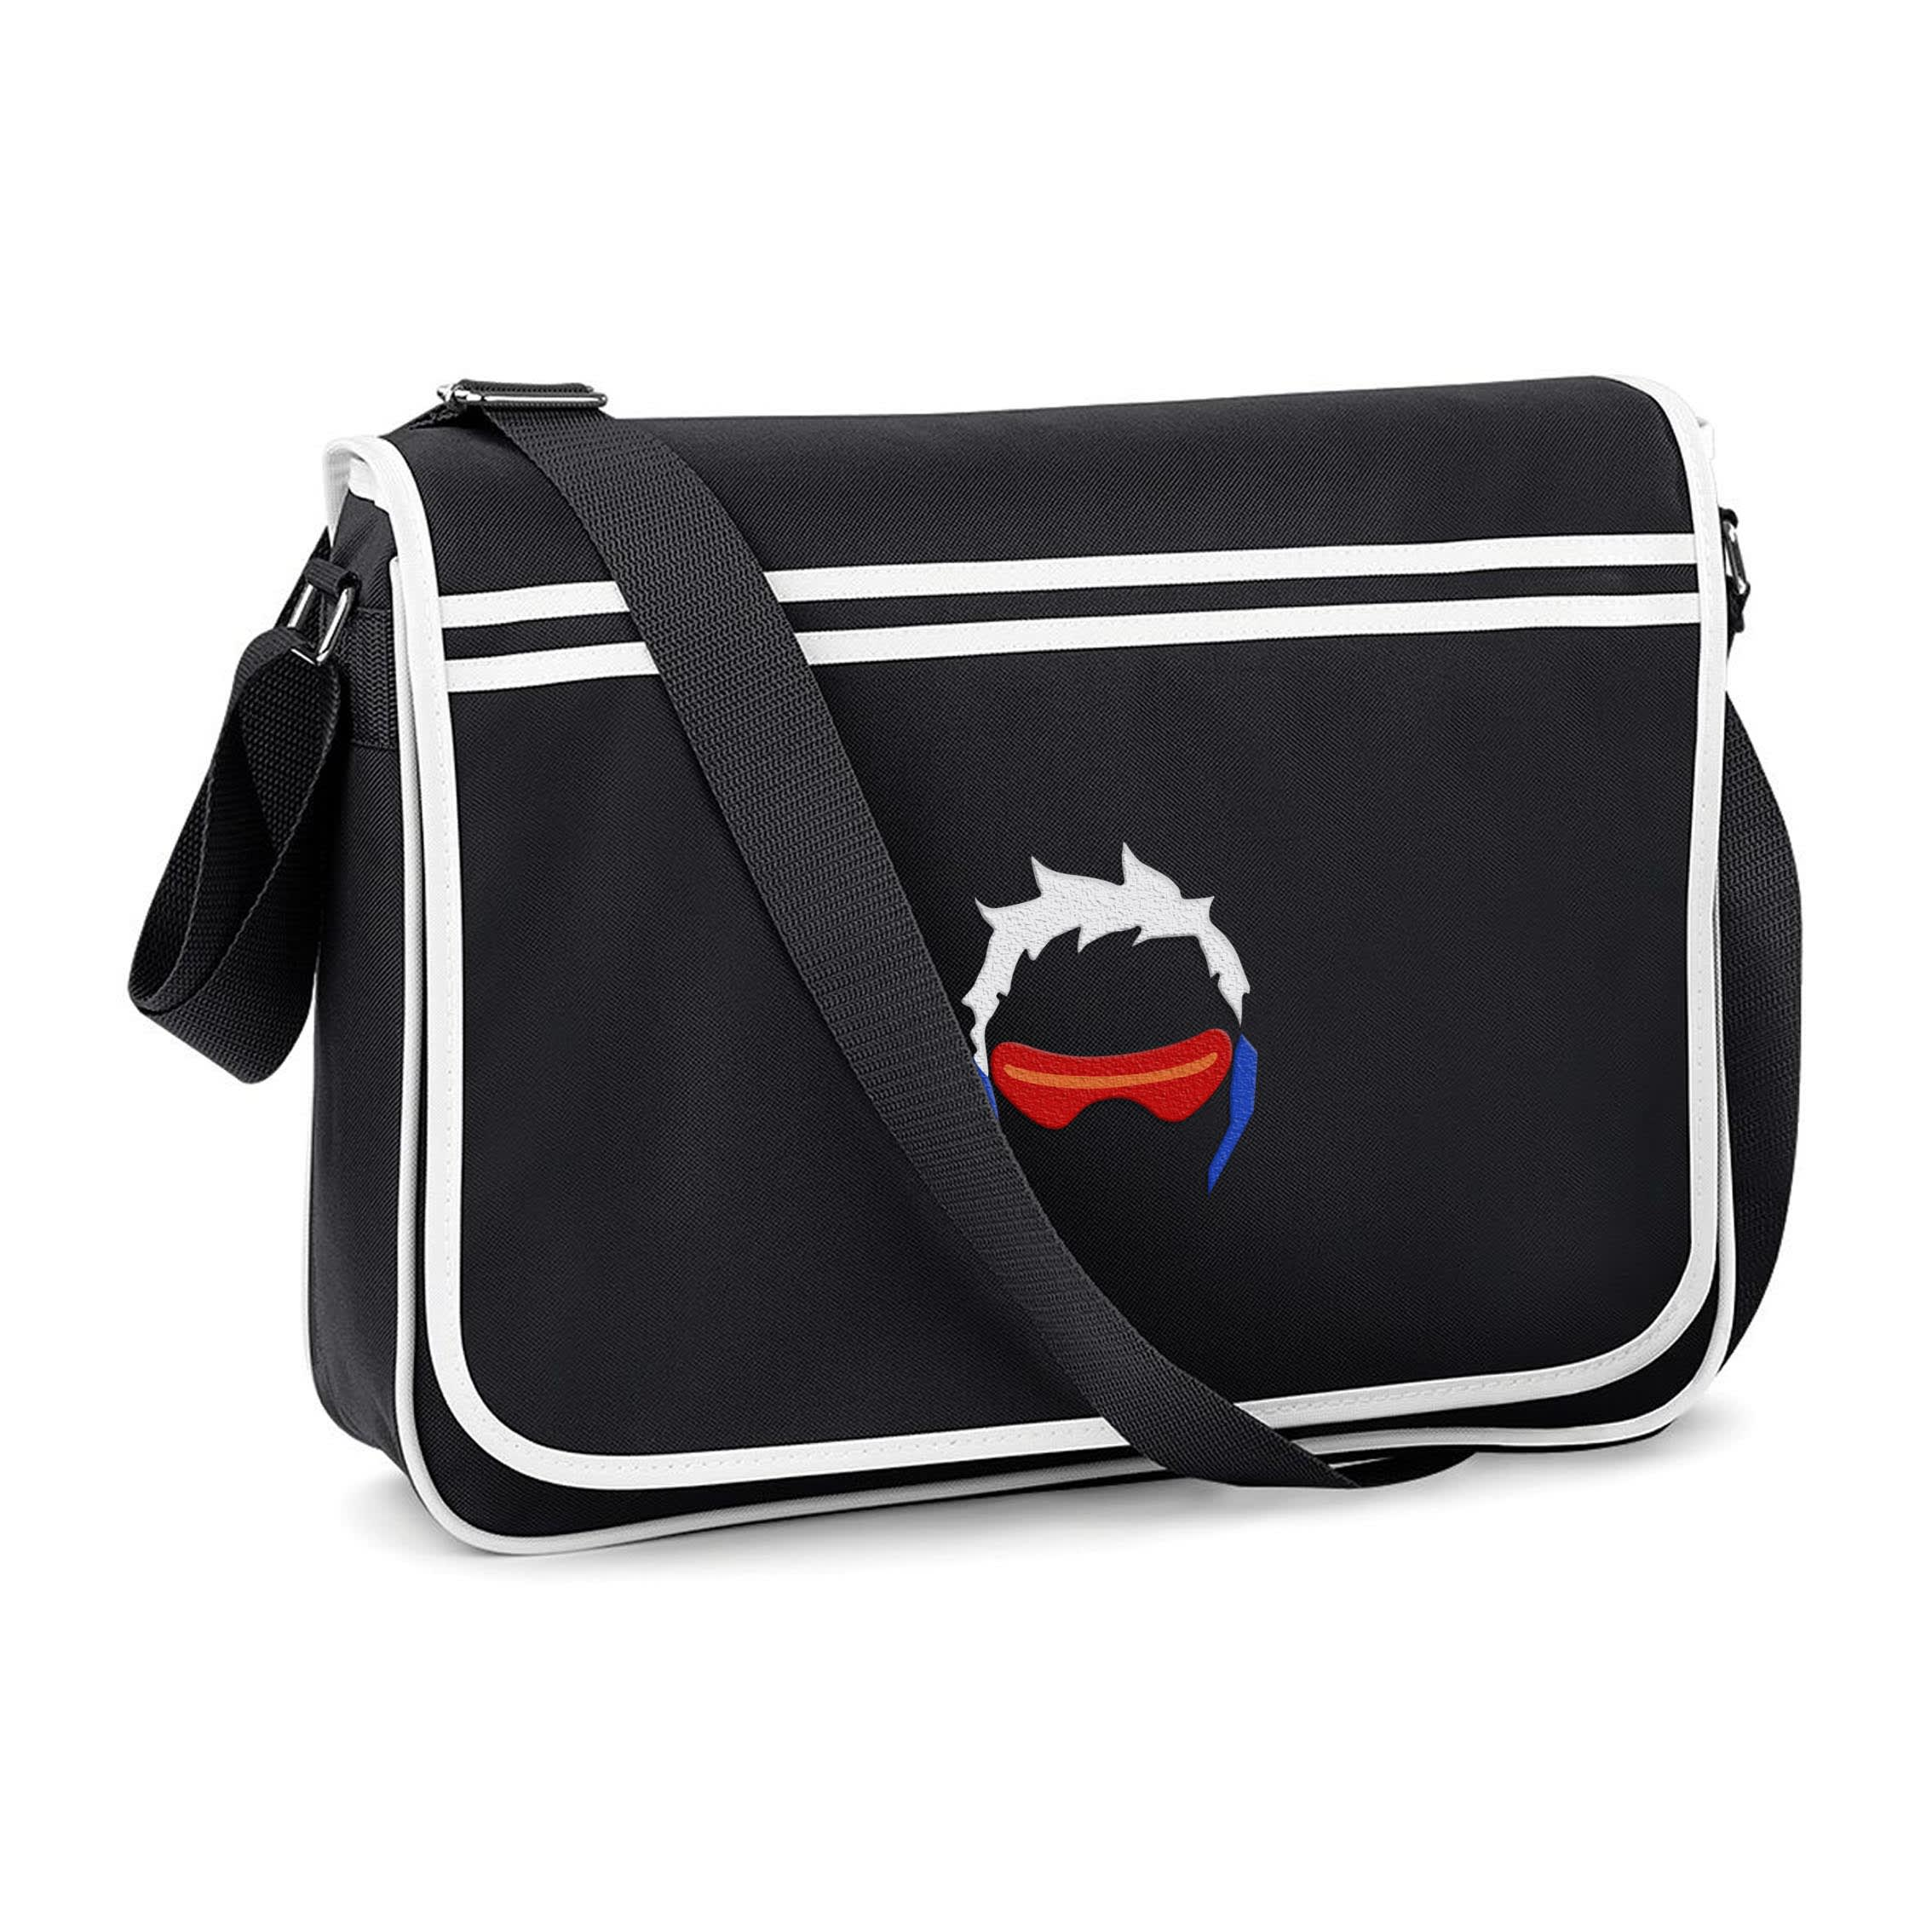 Solider 76 Messenger Bag